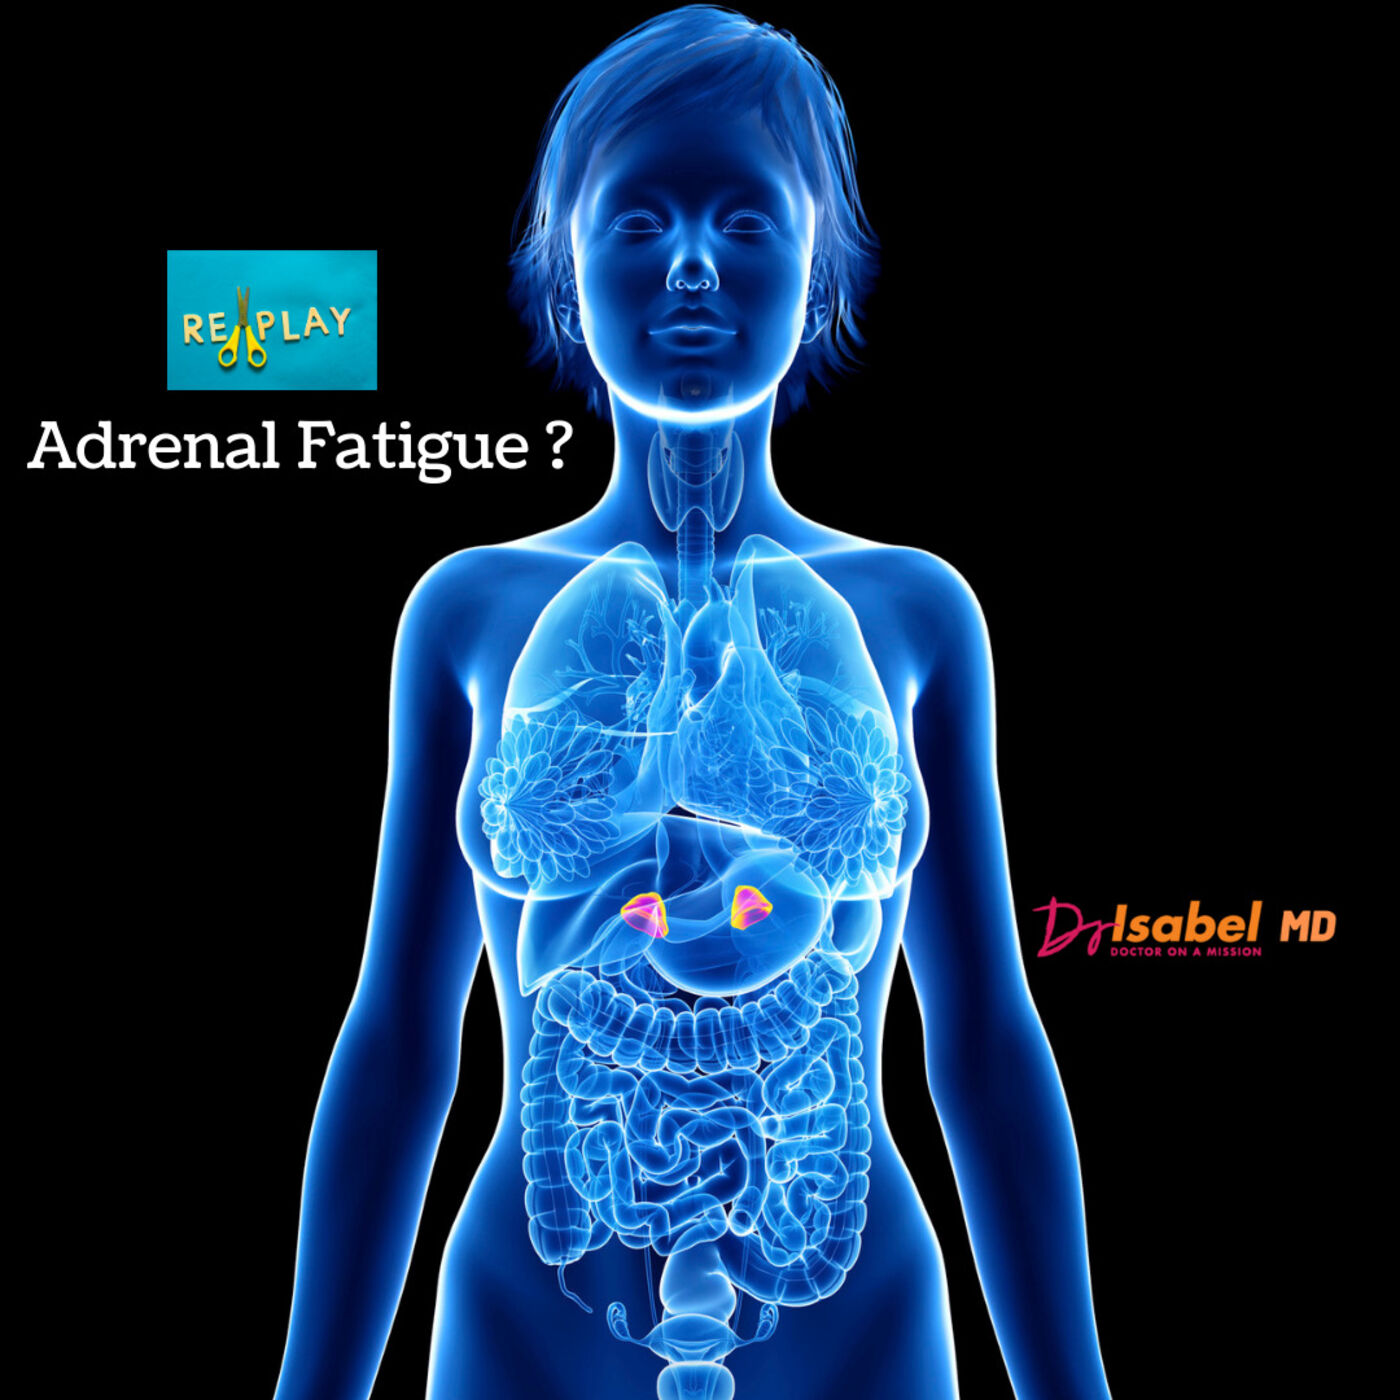 Adrenal Fatigue / Replay of